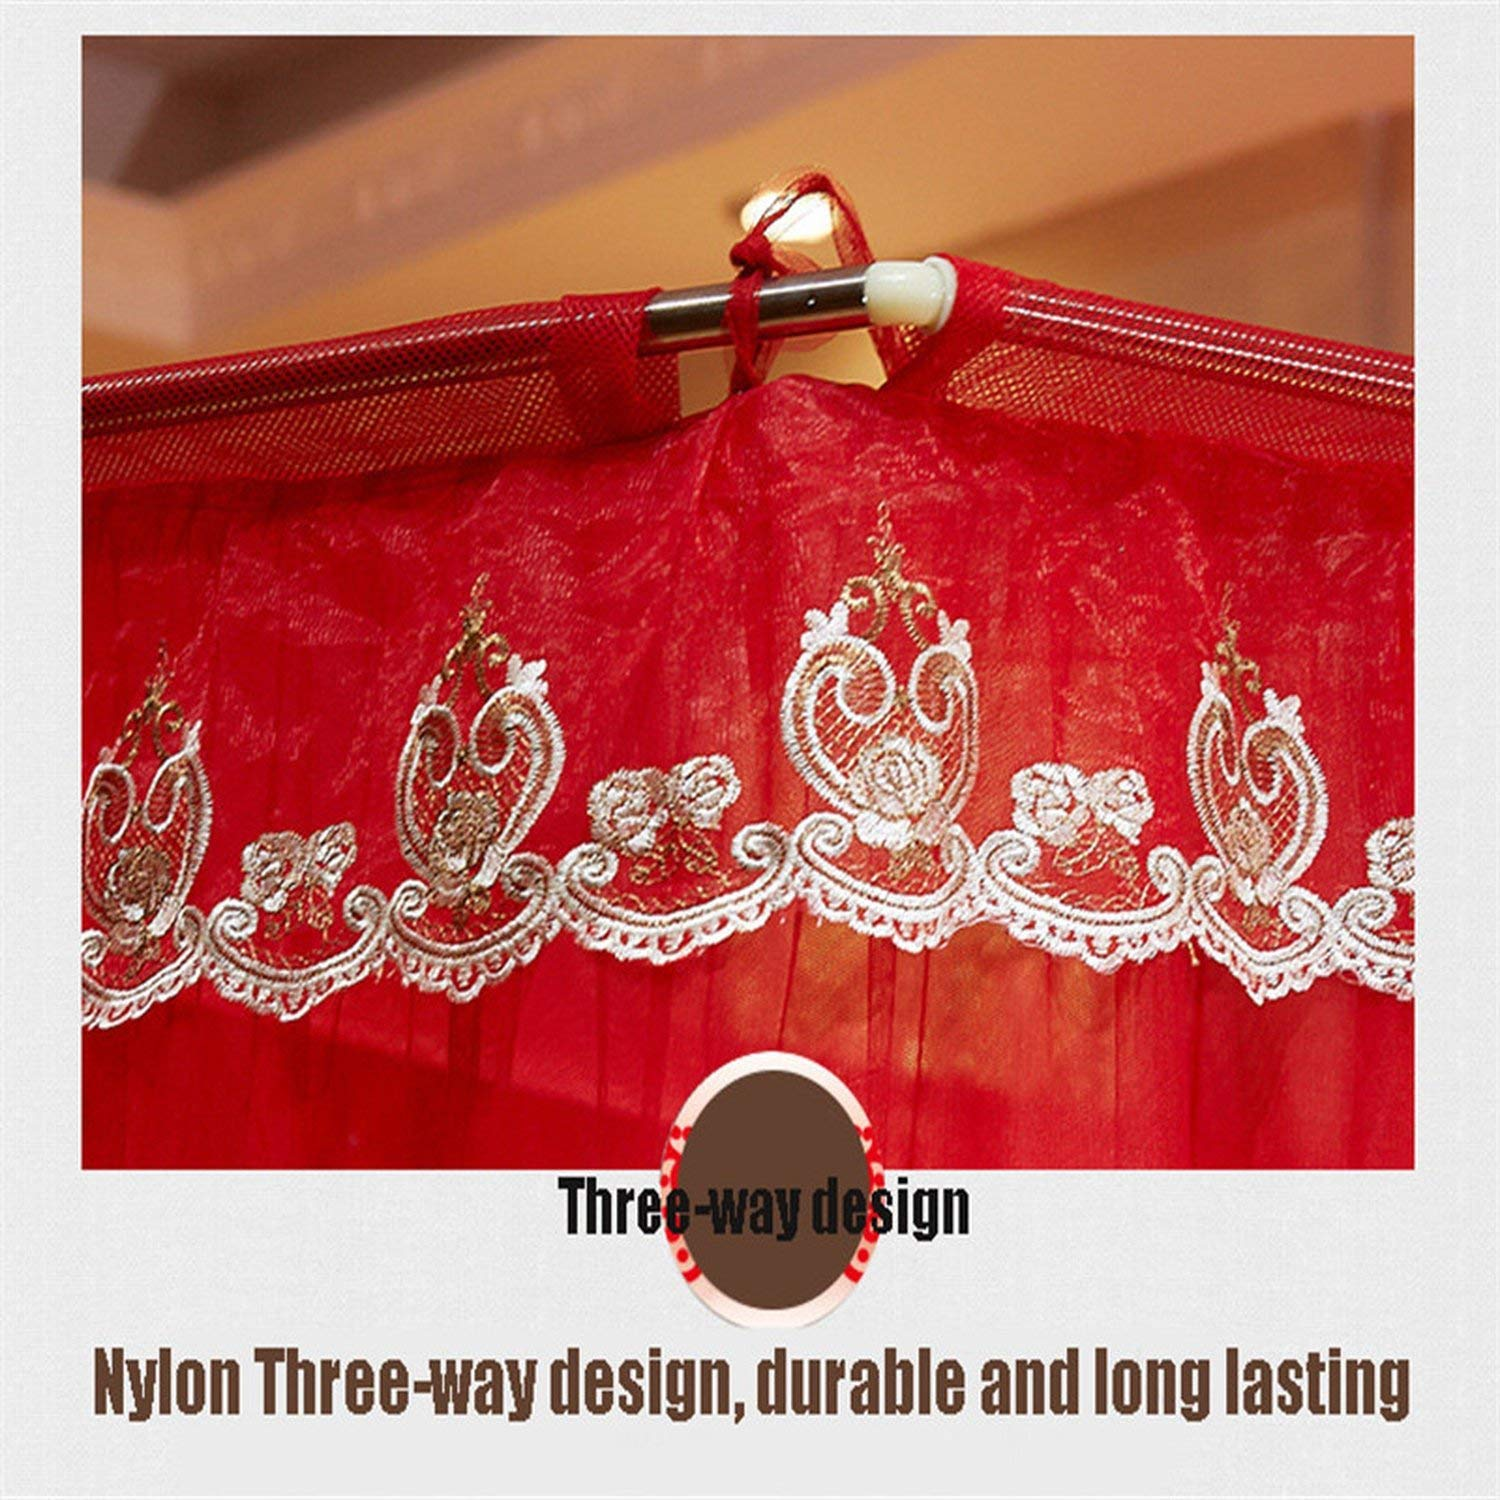 Fishing Rod Retractable Three Door Palace Mosquito Net Floor Standing Anti Mosquito Wedding Nets,Wedding Red Color,1.8Mwx2Mlx2.1Mh by special shine-shop mosquito net (Image #4)